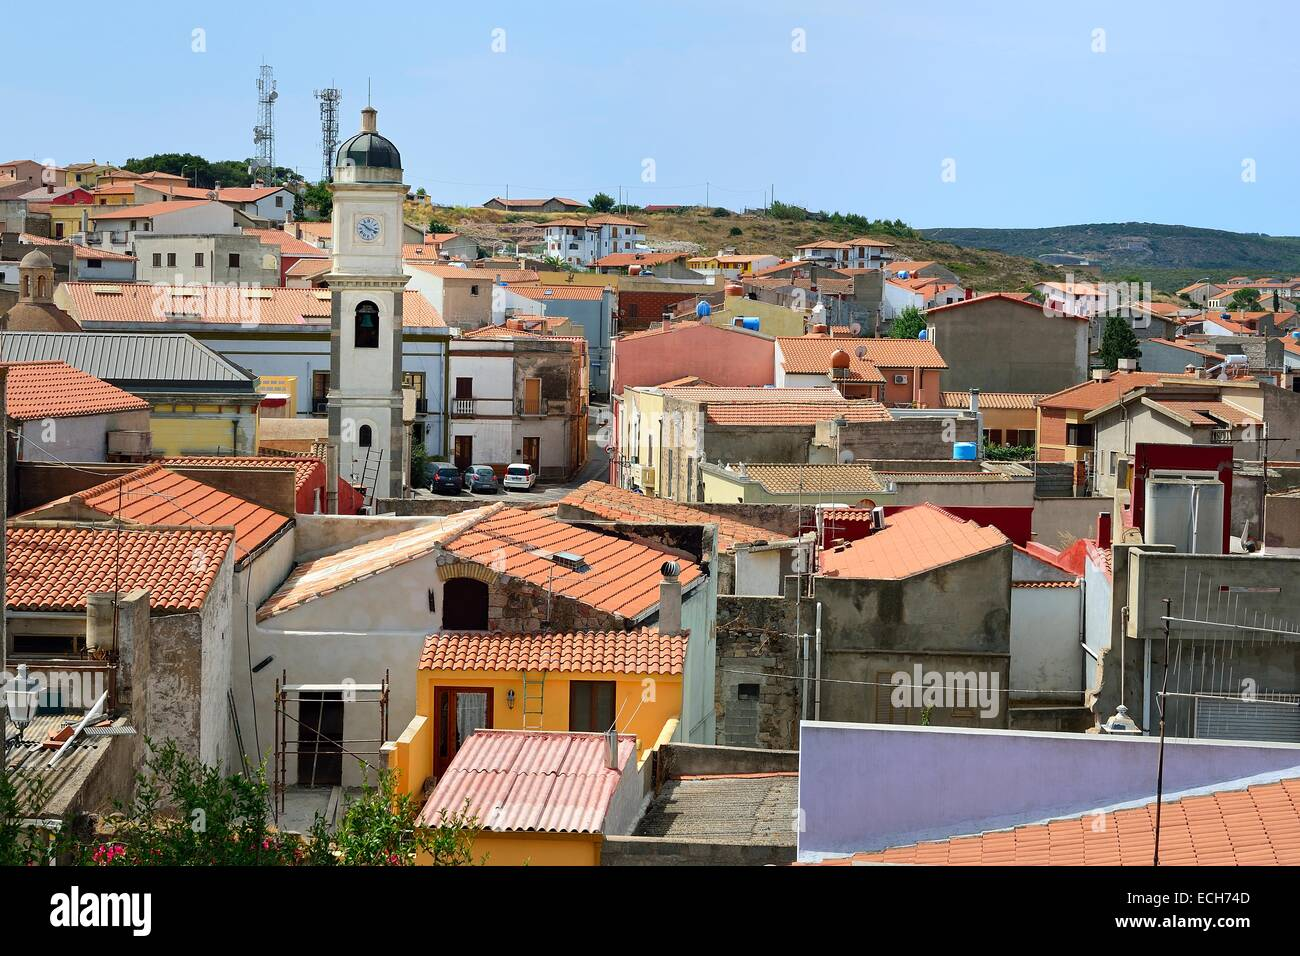 Overview of the town with the Basilica of Sant'Antioco, Isola di Sant'Antioco, Province of Carbonia - Stock Image